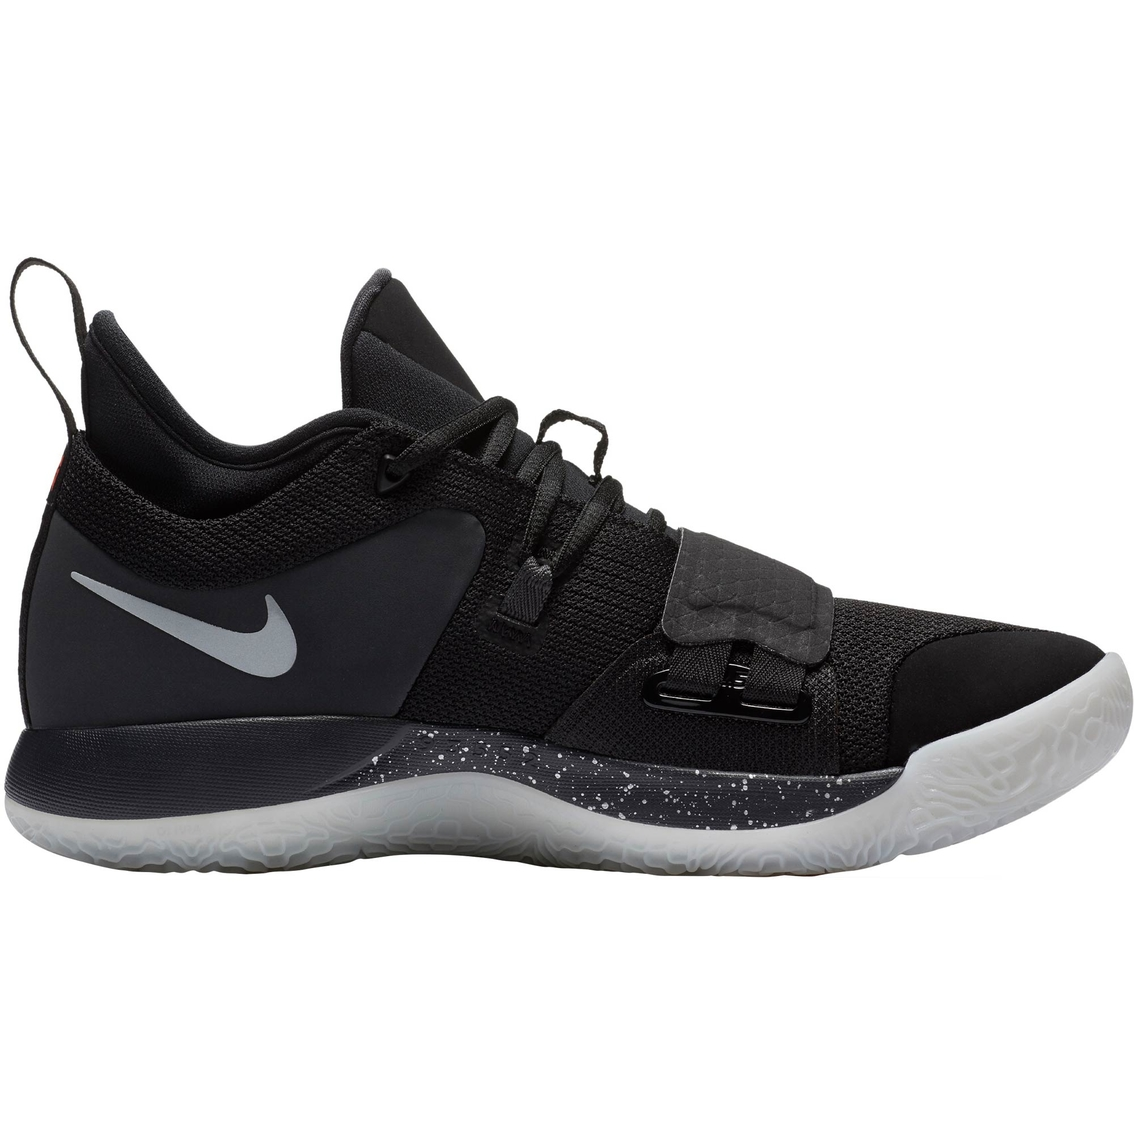 87513da8d439 Nike Men s Pg 2.5 Basketball Shoes